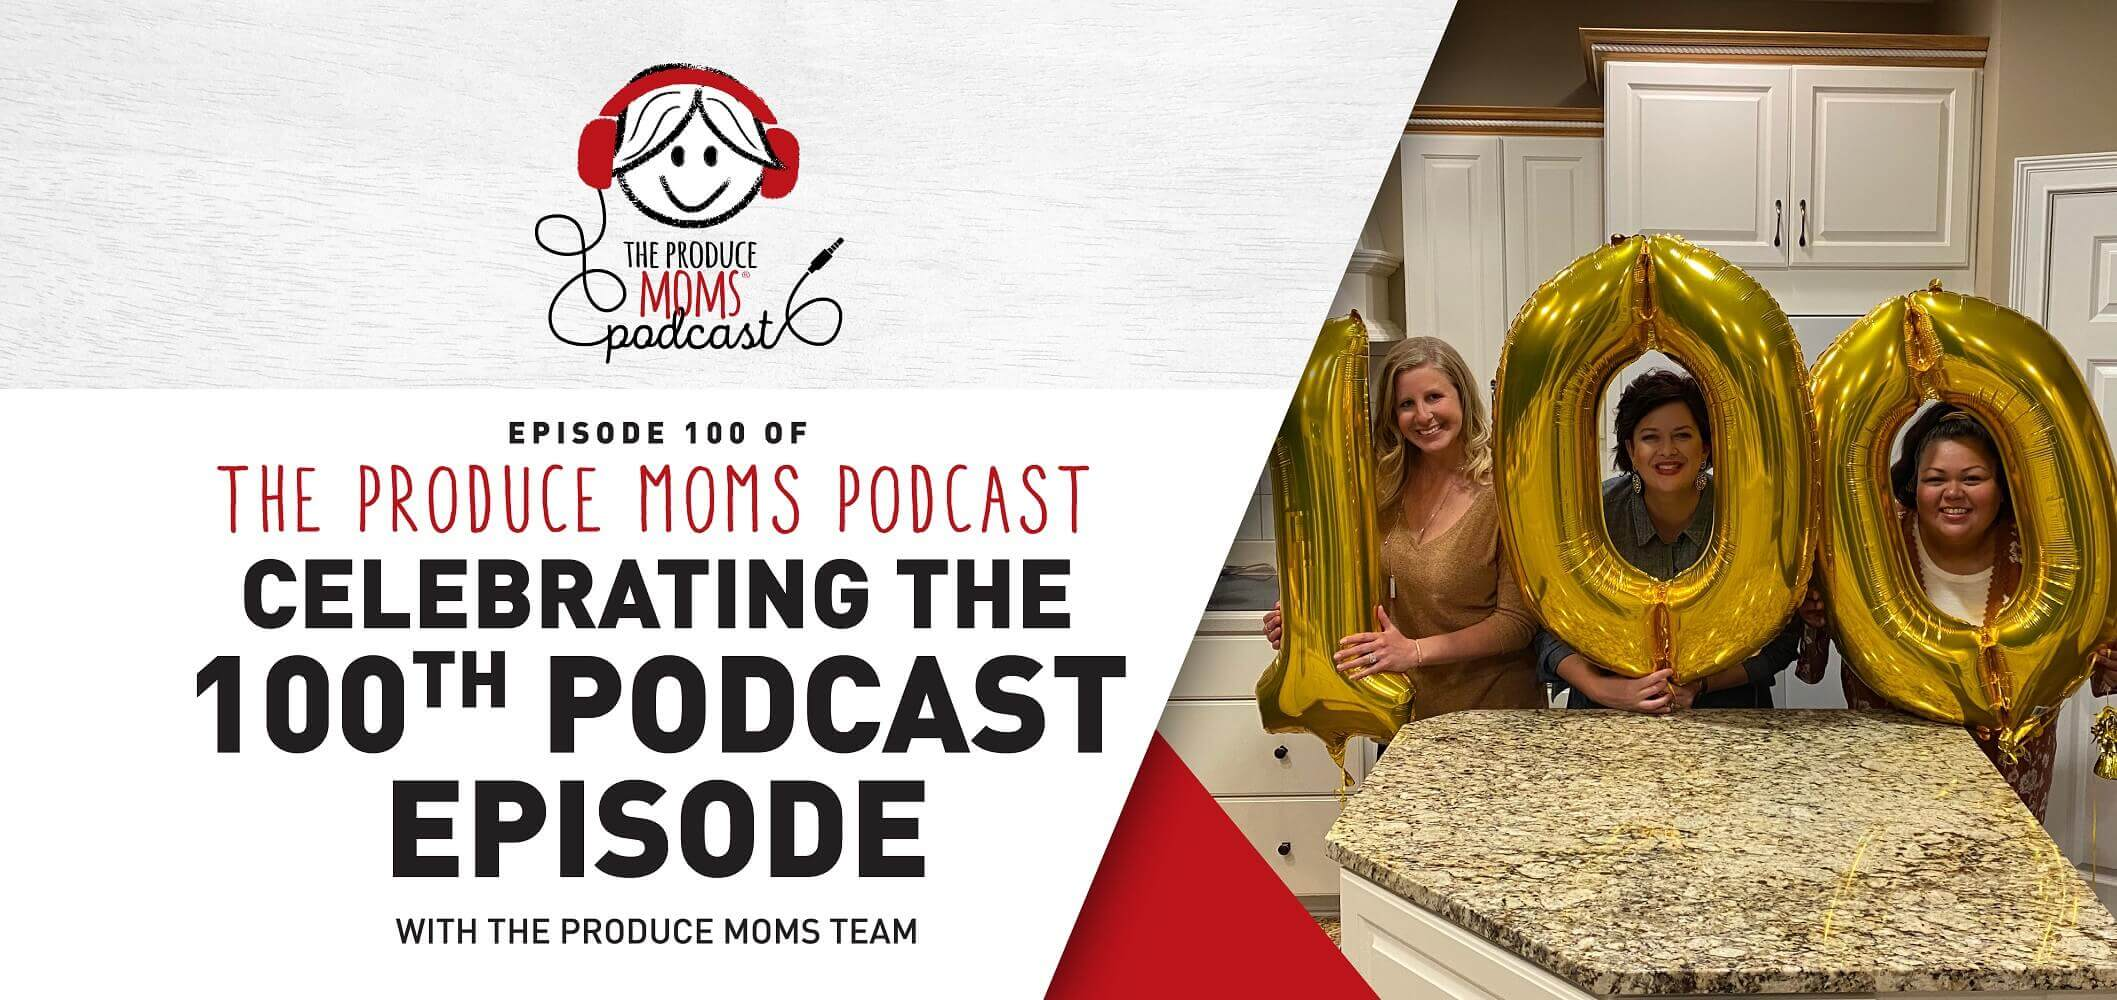 The Produce Moms 100th Episode